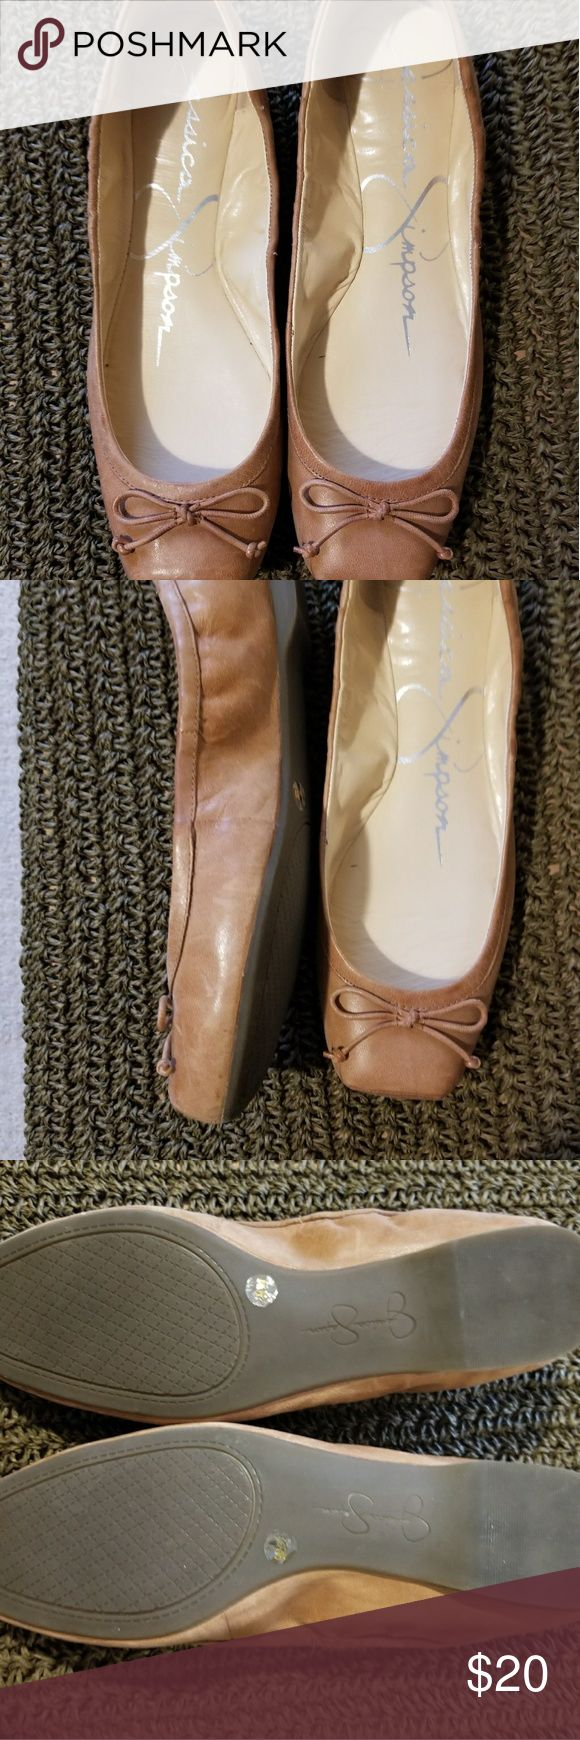 Ballet flats Jessica Simpson beige ballet flats. In excellent condition. Very cute with jeans or tights/skirt. Jessica Simpson Shoes Flats & Loafers